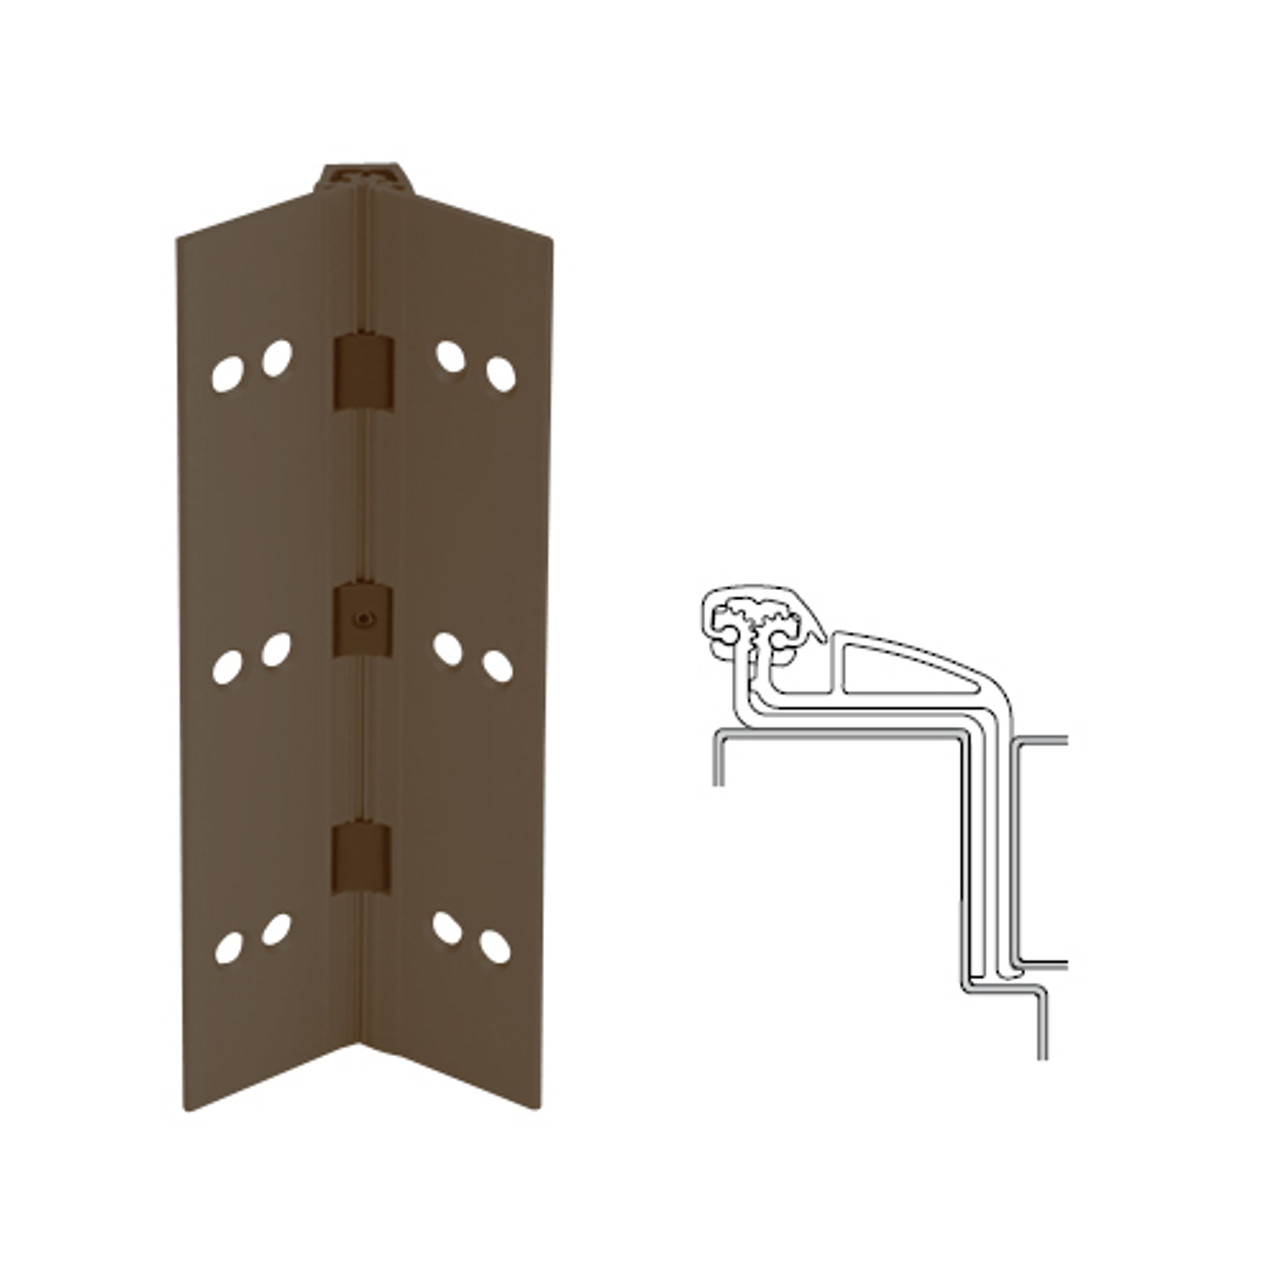 041XY-313AN-95-TFWD IVES Full Mortise Continuous Geared Hinges with Thread Forming Screws in Dark Bronze Anodized